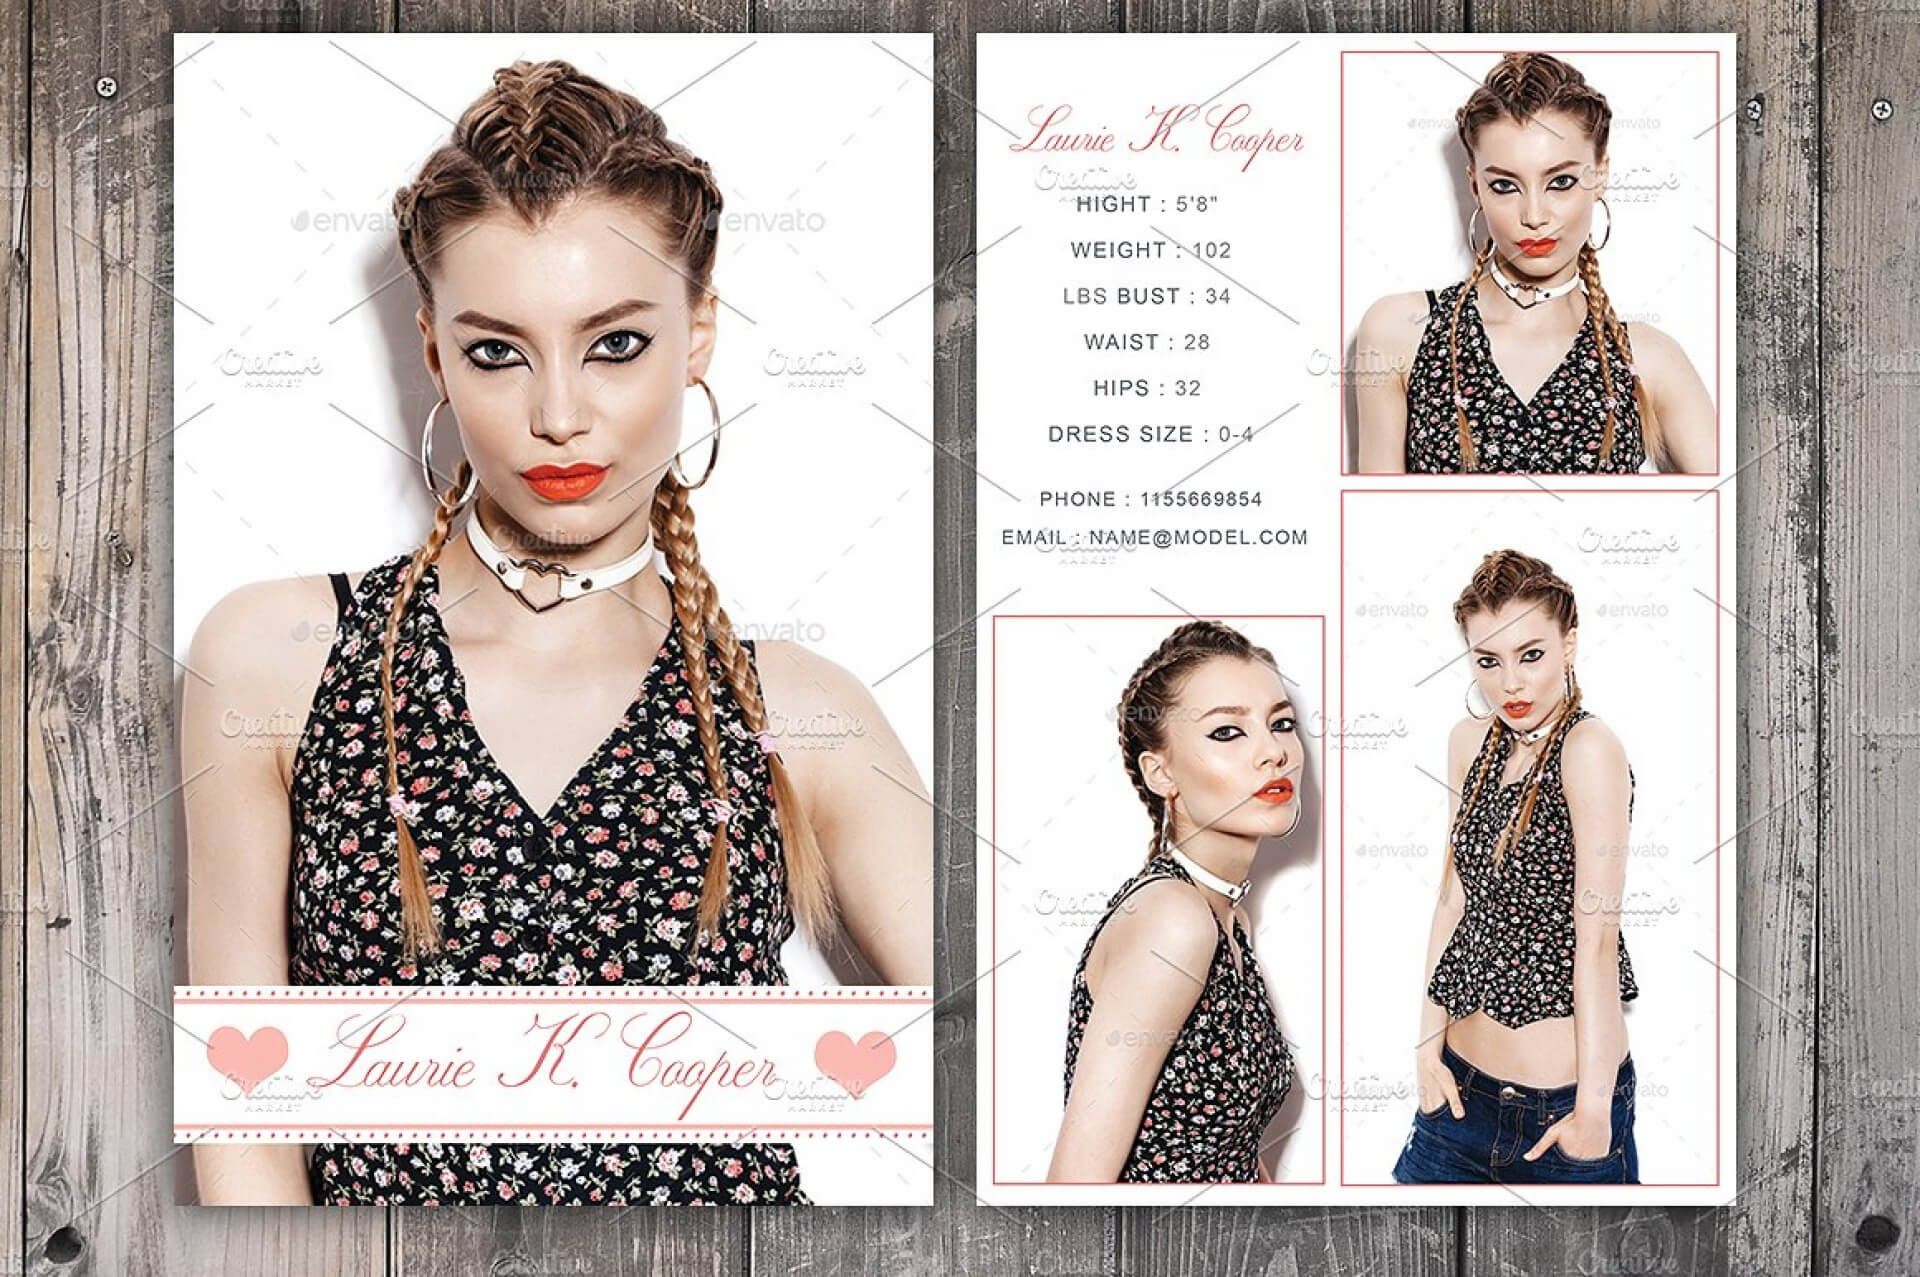 Free Comp Card Template Brochure Templates For Mac Photoshop Within Free Comp Card Template